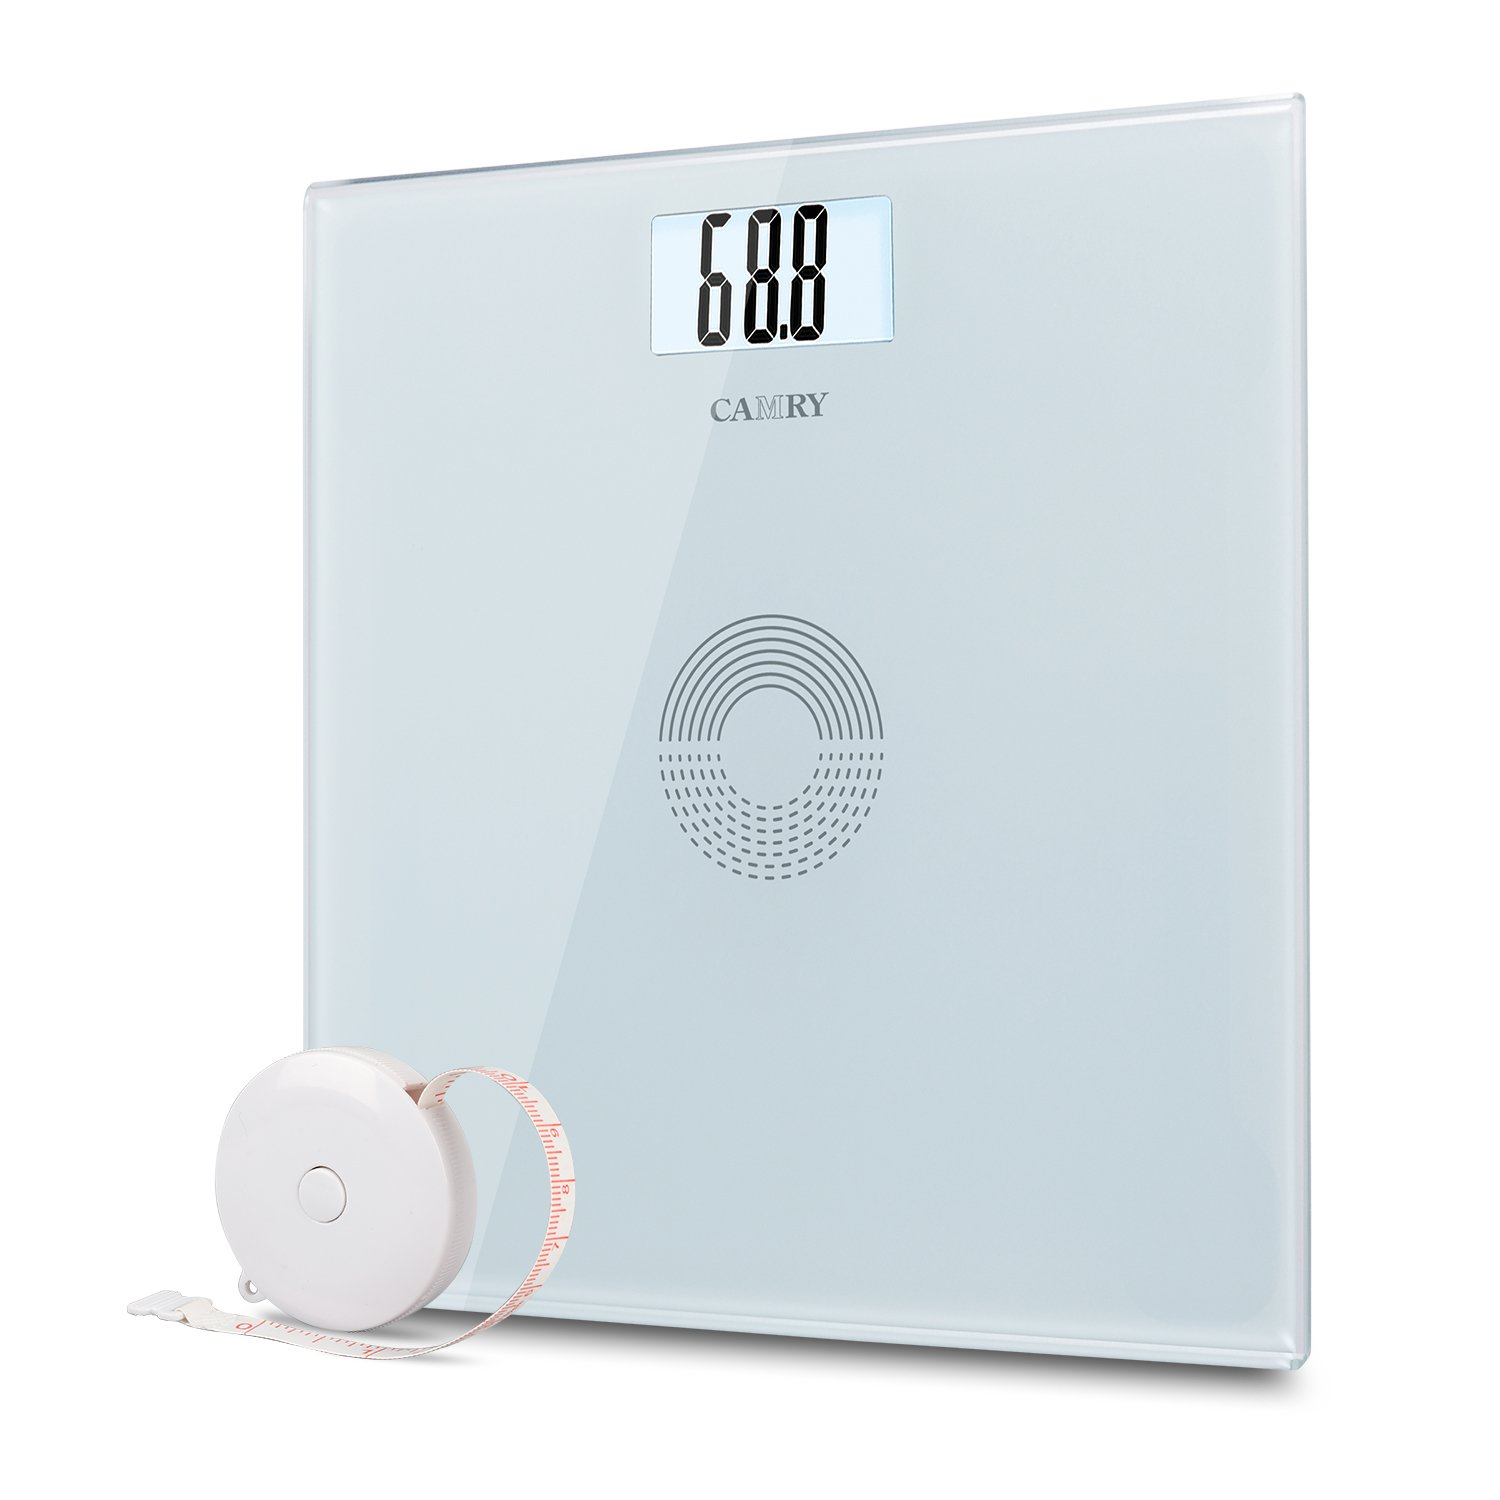 Camry Digital Body Weight Bathroom Scale with Body Tape Measure,13.7inch Larger Platform, Step-on Technology,Tempered Glass and Large Easy Read Backlit LCD Display 440 pounds (White) EB9233H-NF-W